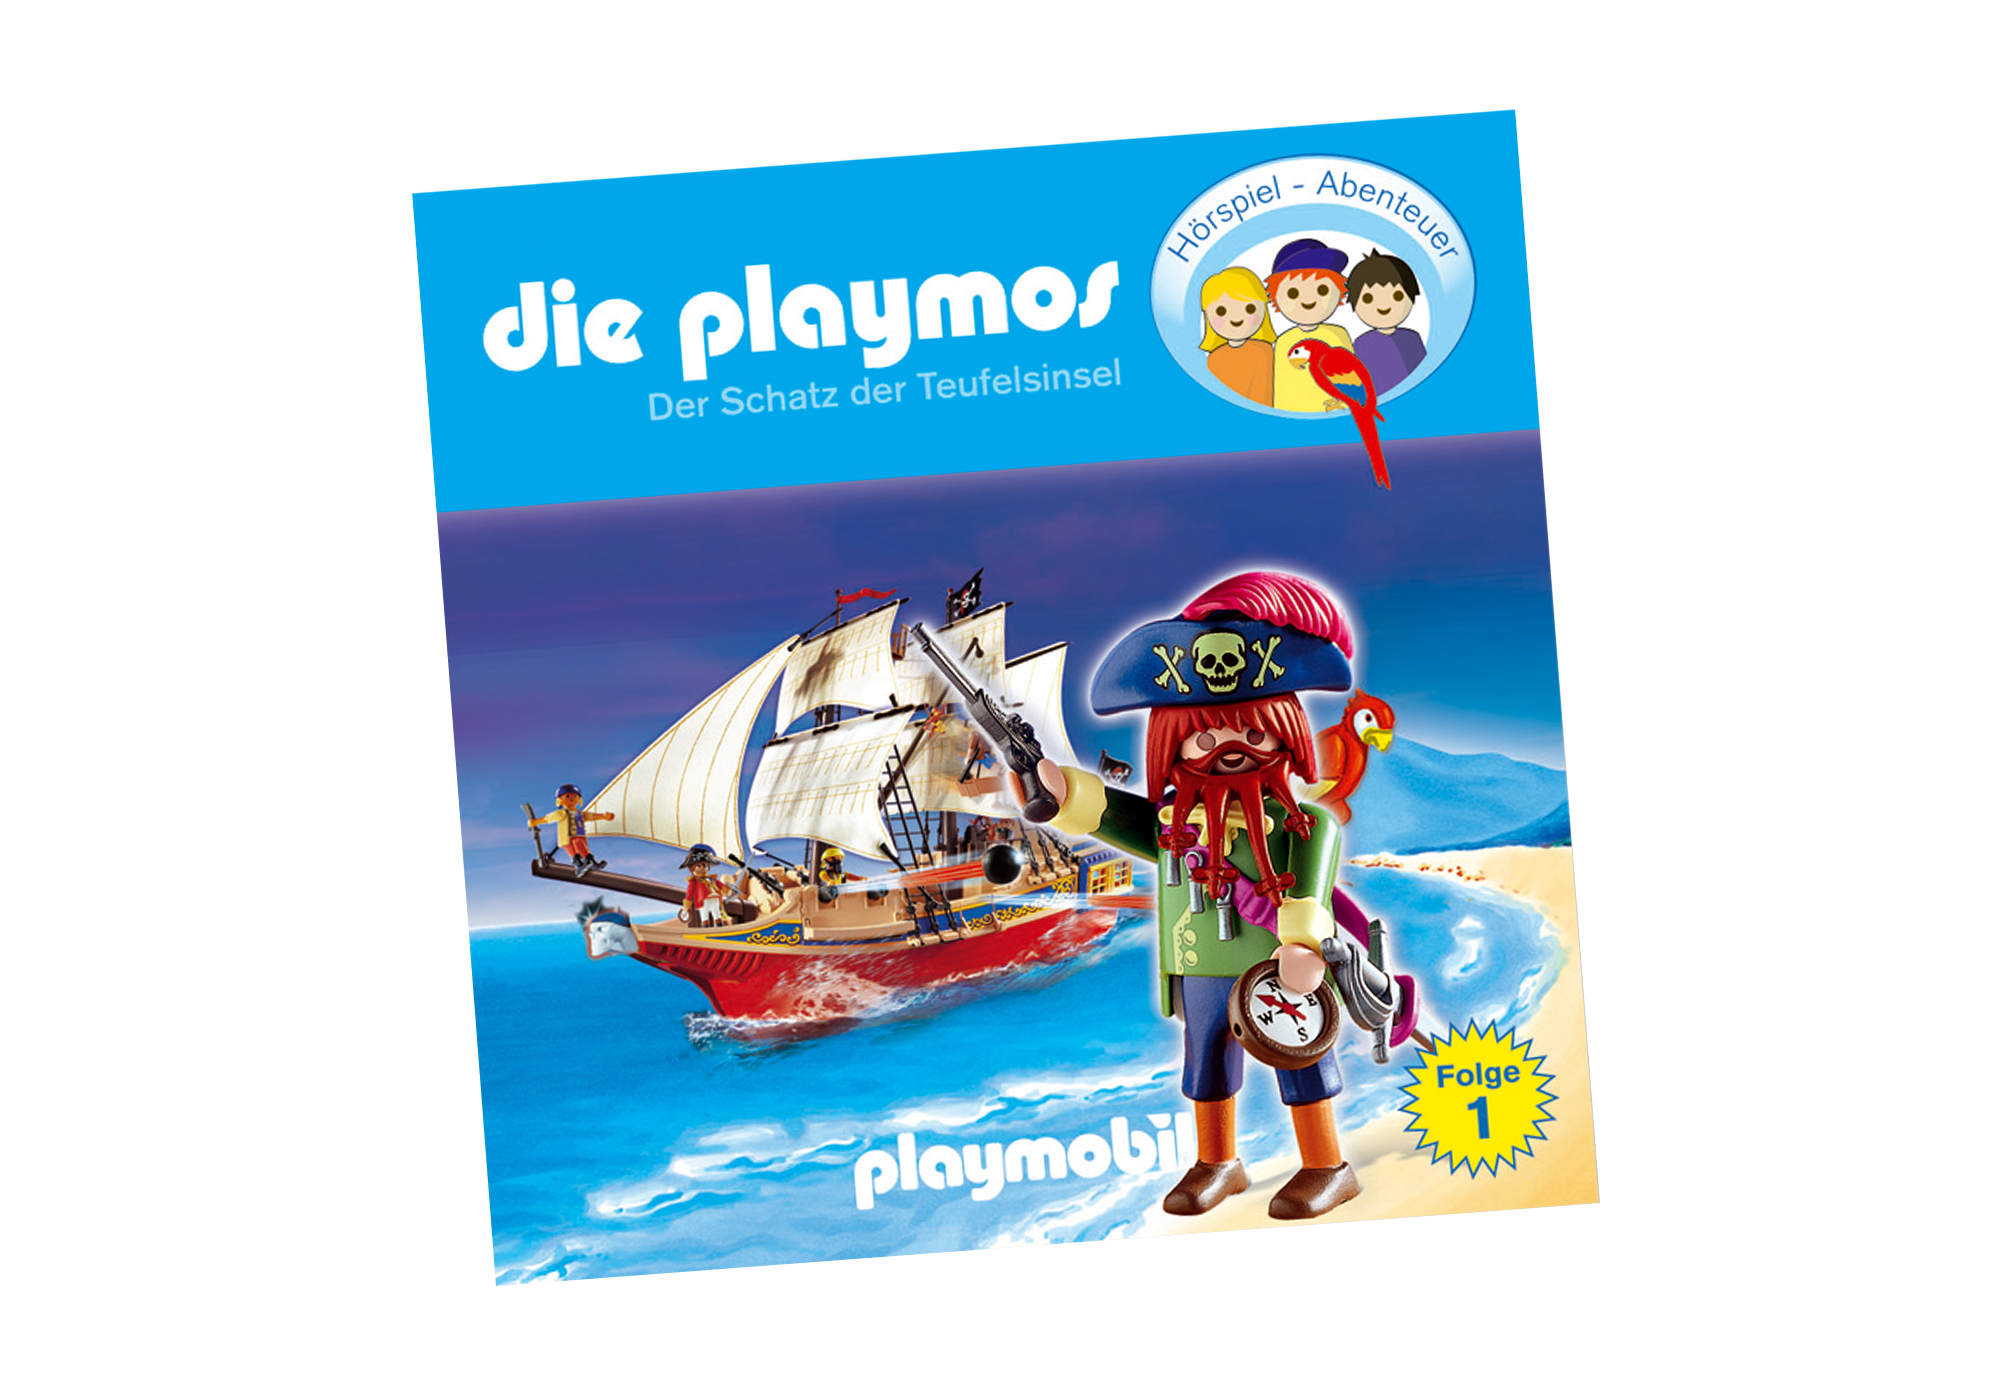 http://media.playmobil.com/i/playmobil/80128_product_detail